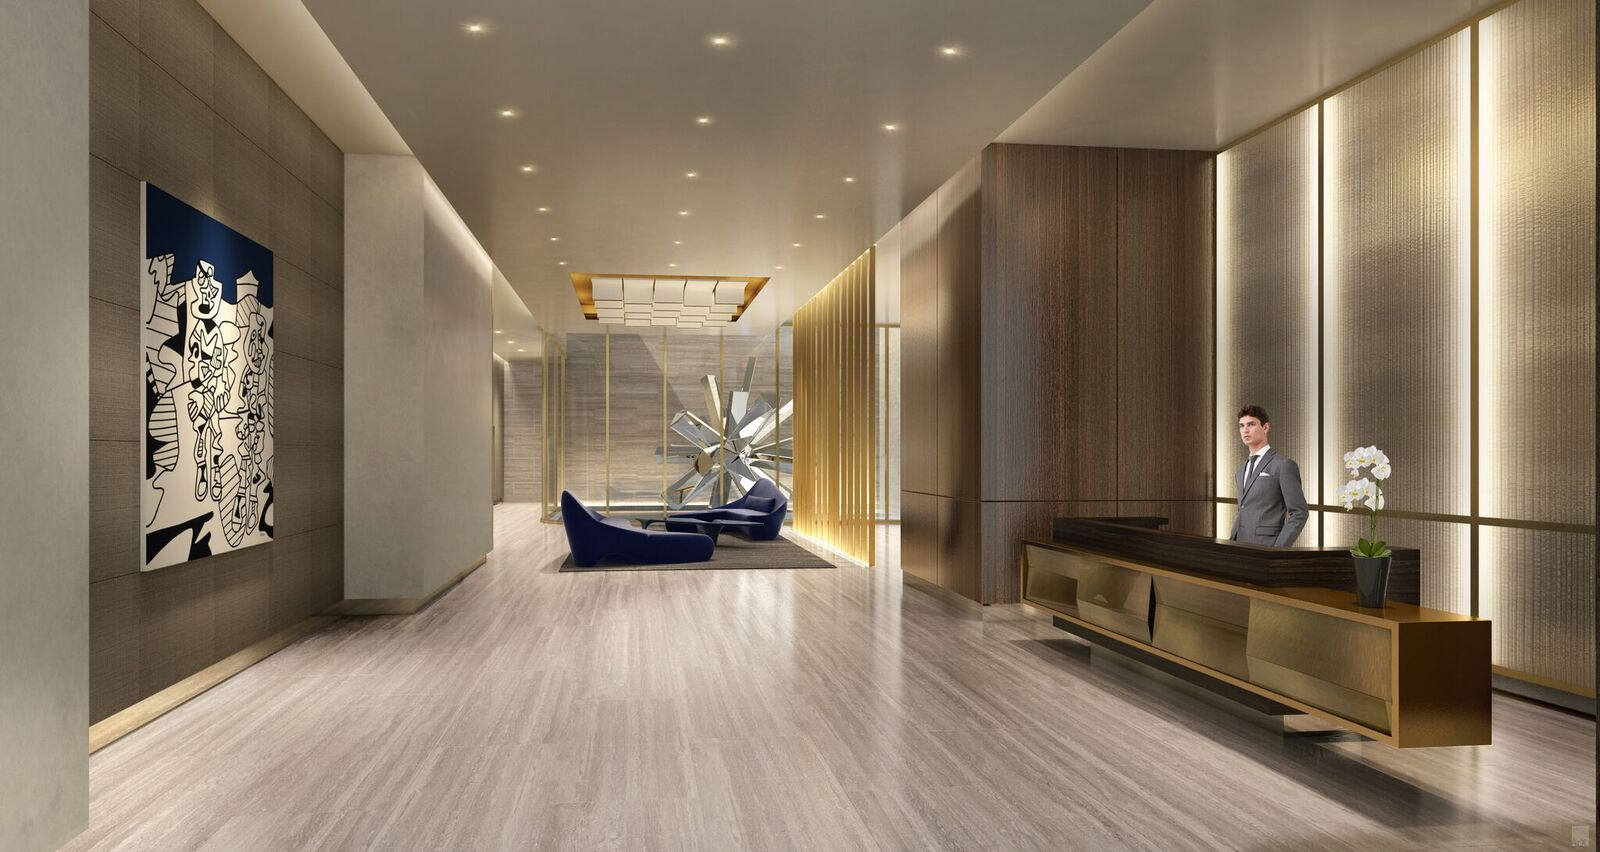 Oskar Lobby / Rendering credit: The Moinian Group